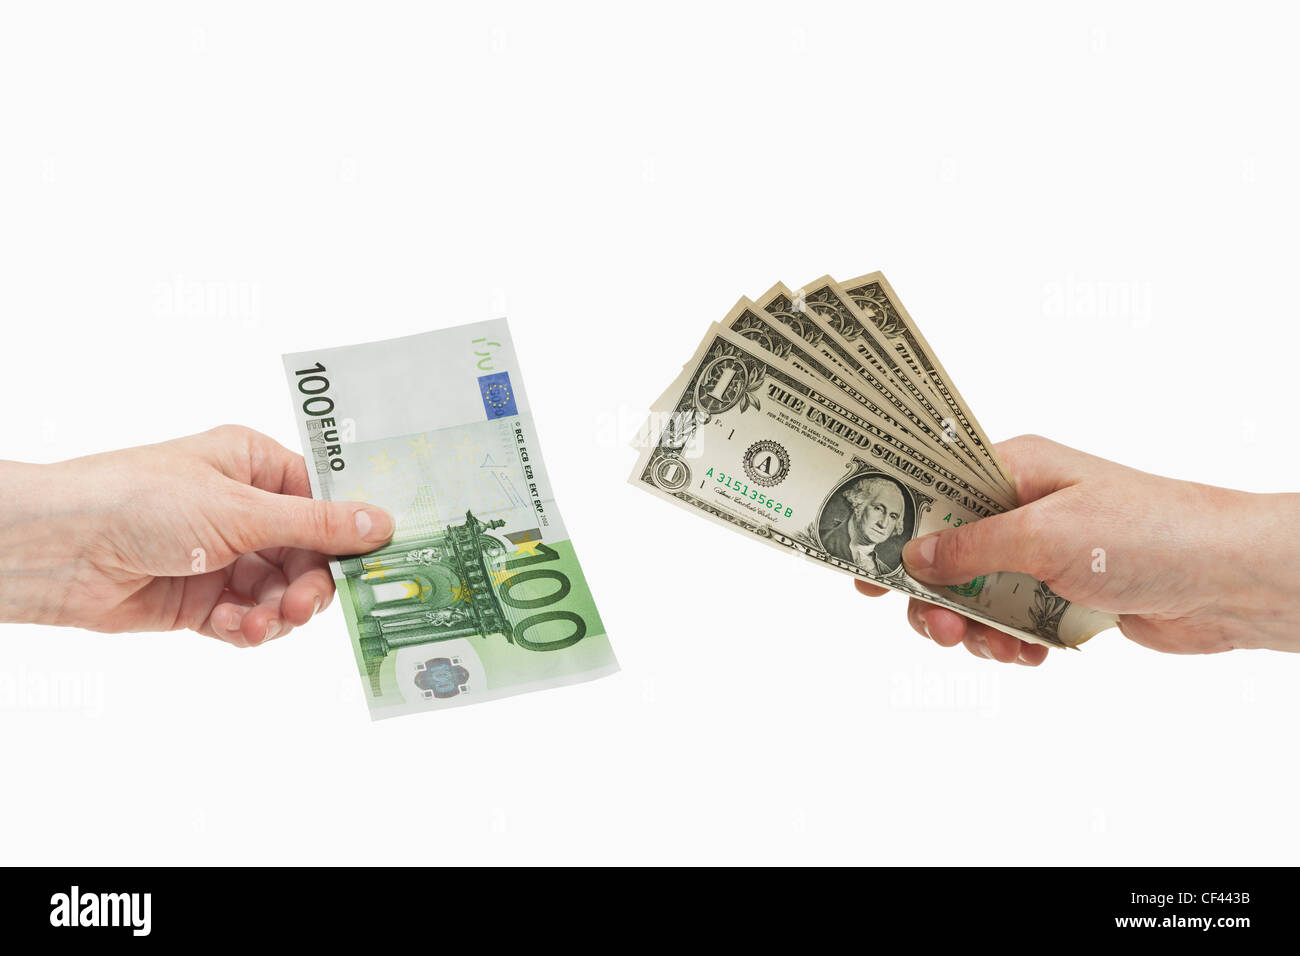 Five 1 U.S. Dollar bills are held in the hand. At the other side a 100 Euro bill is held in the hand, background Stock Photo